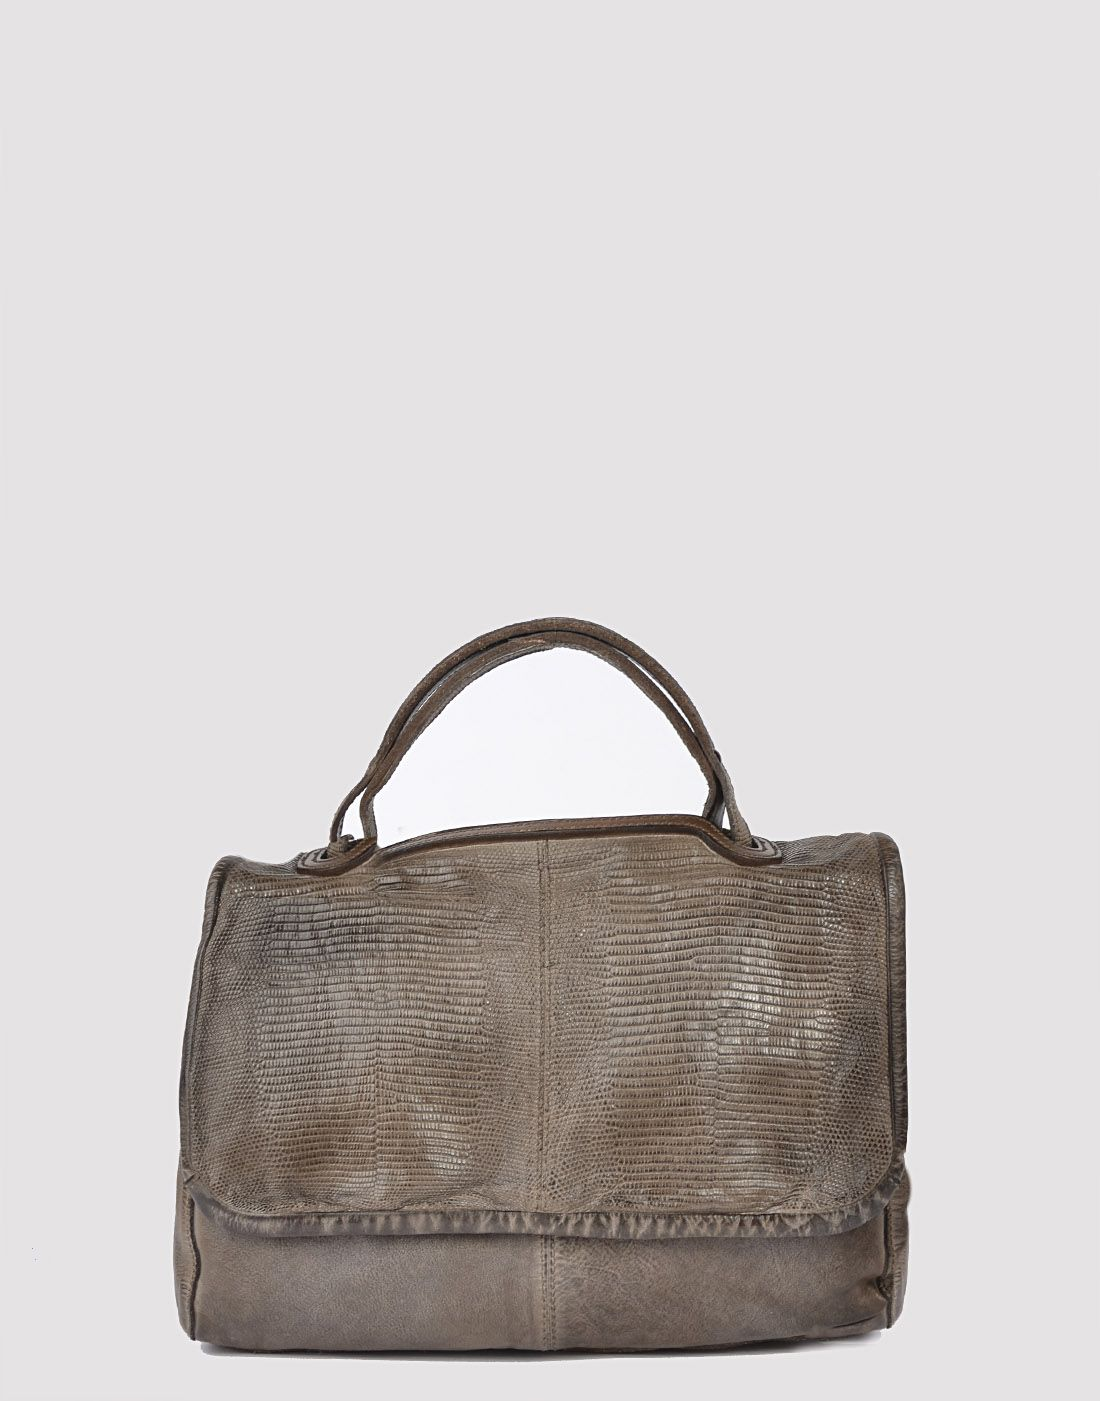 HANDBAGS - Shoulder bags Reptiles House Clearance Online Amazon Visa Payment Knock Off Buy Cheap Low Price ntxFxf